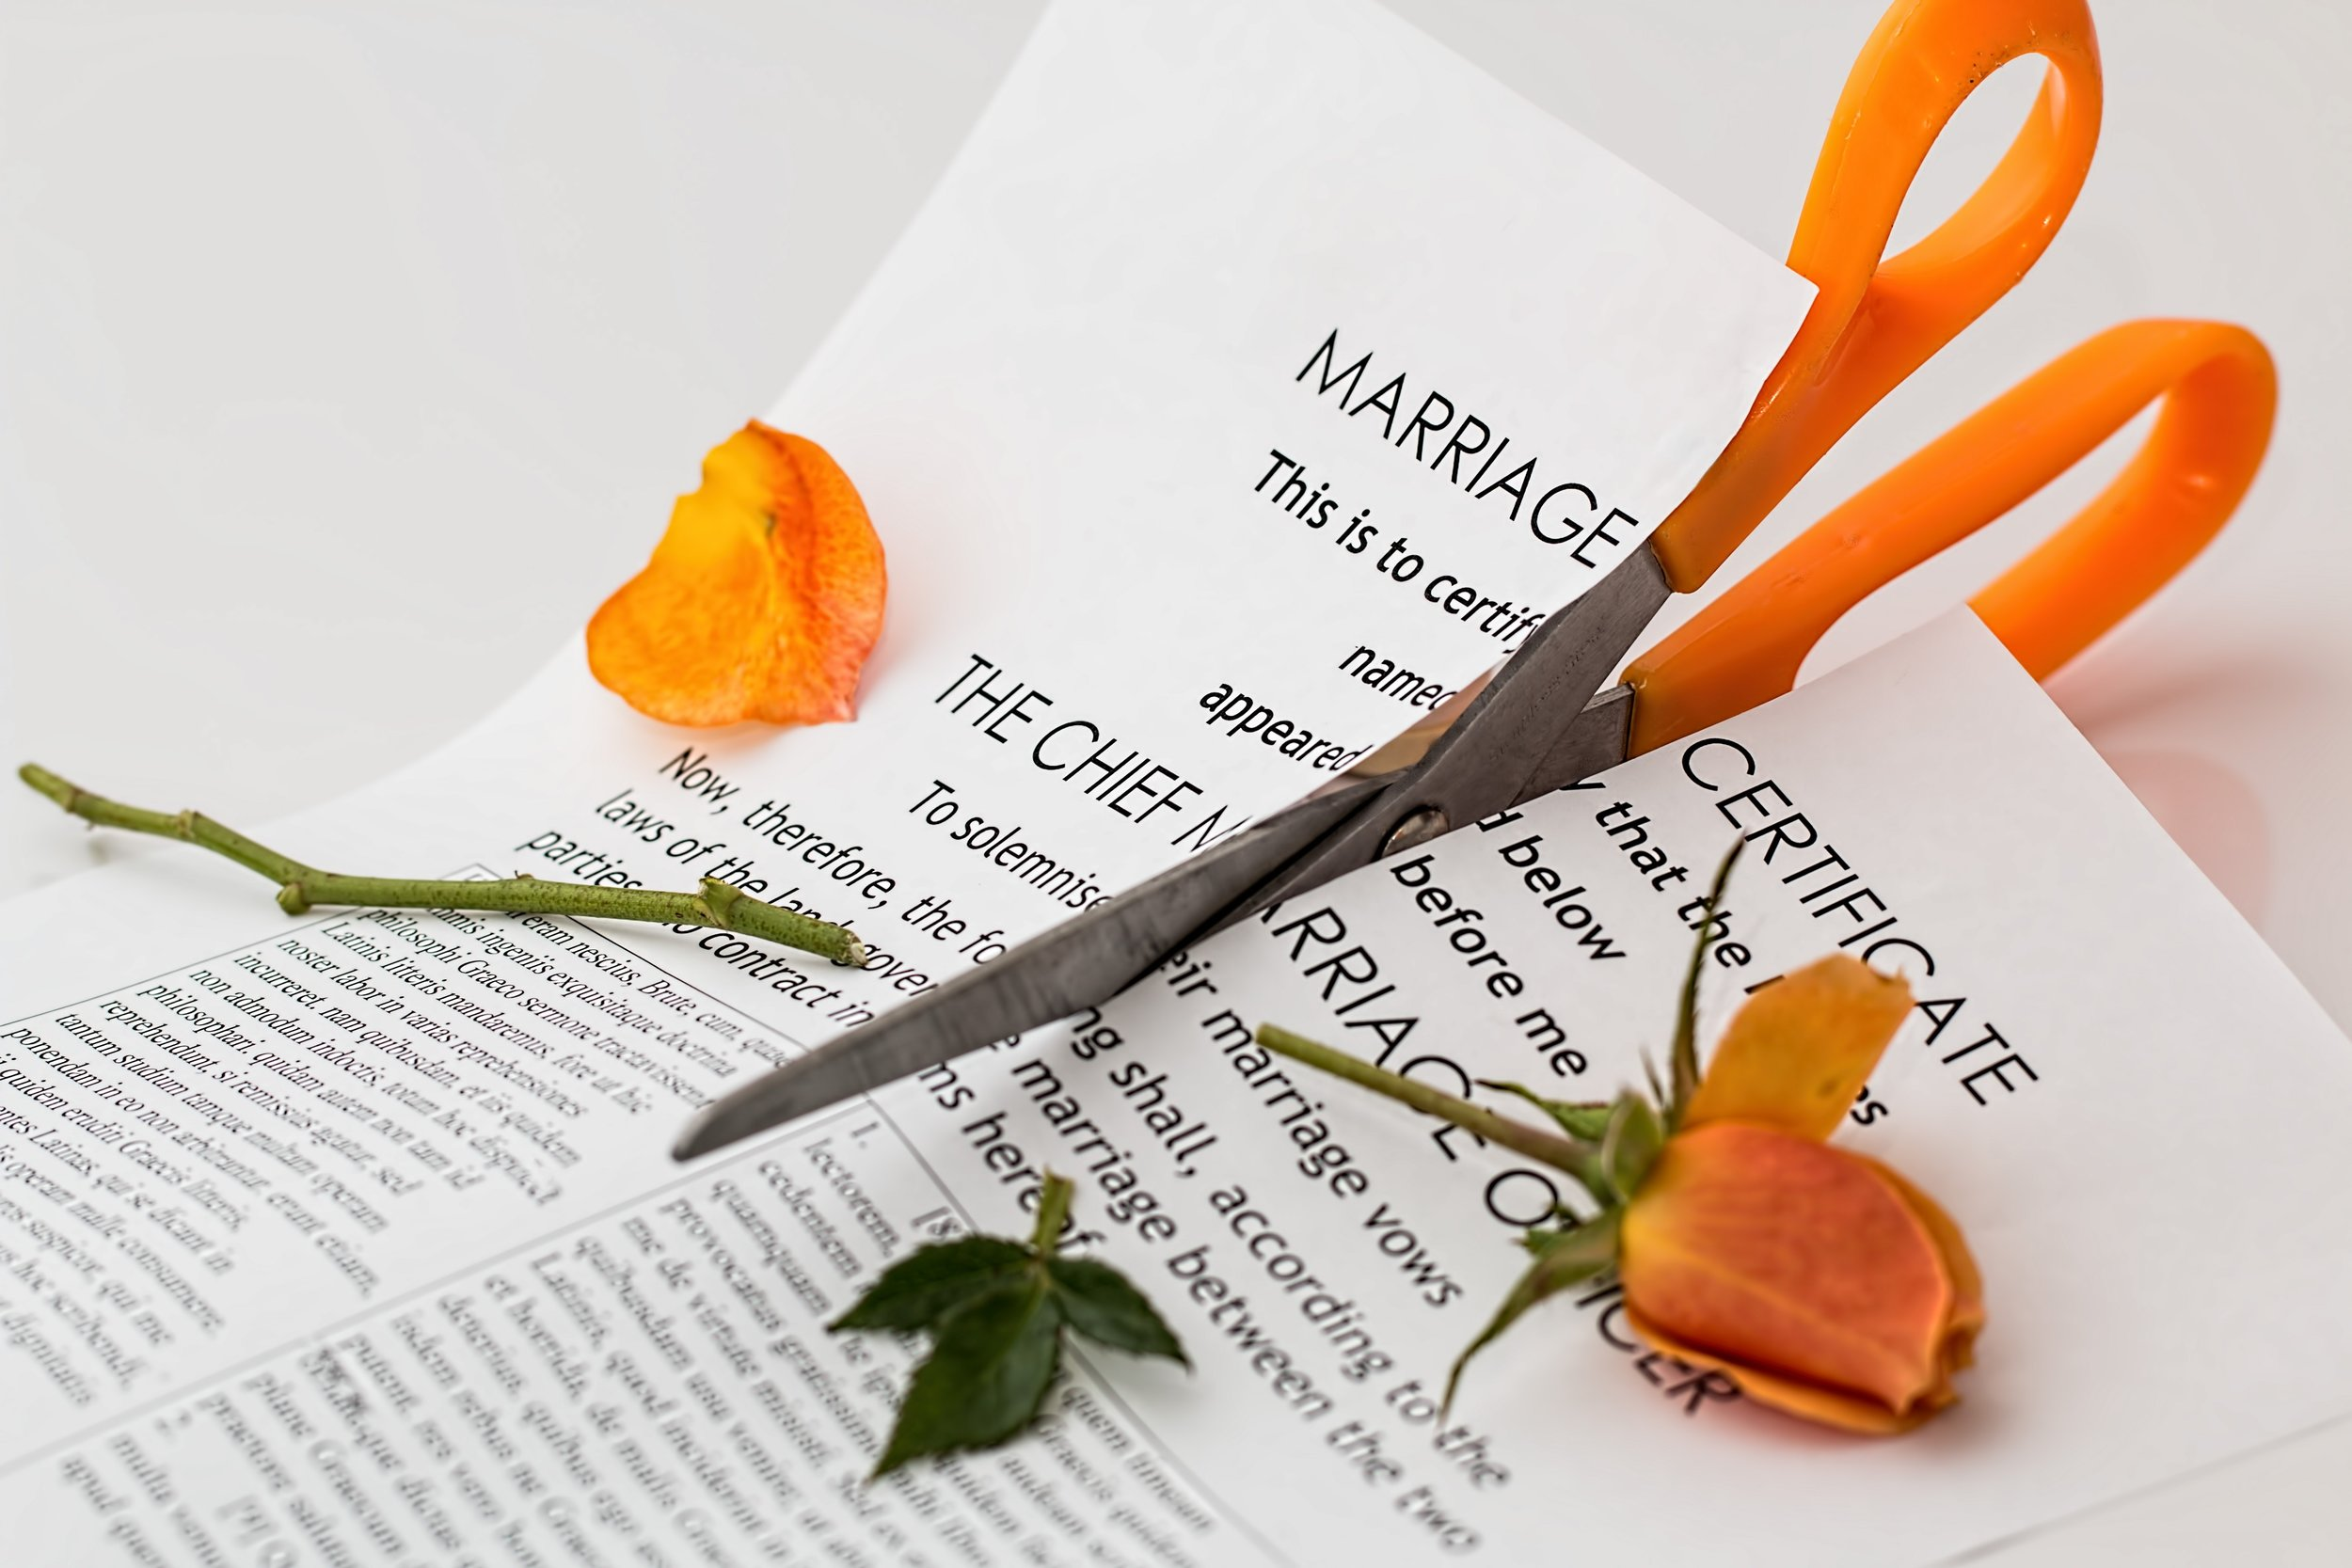 Family Law - Divorce, Custody, Post Decree